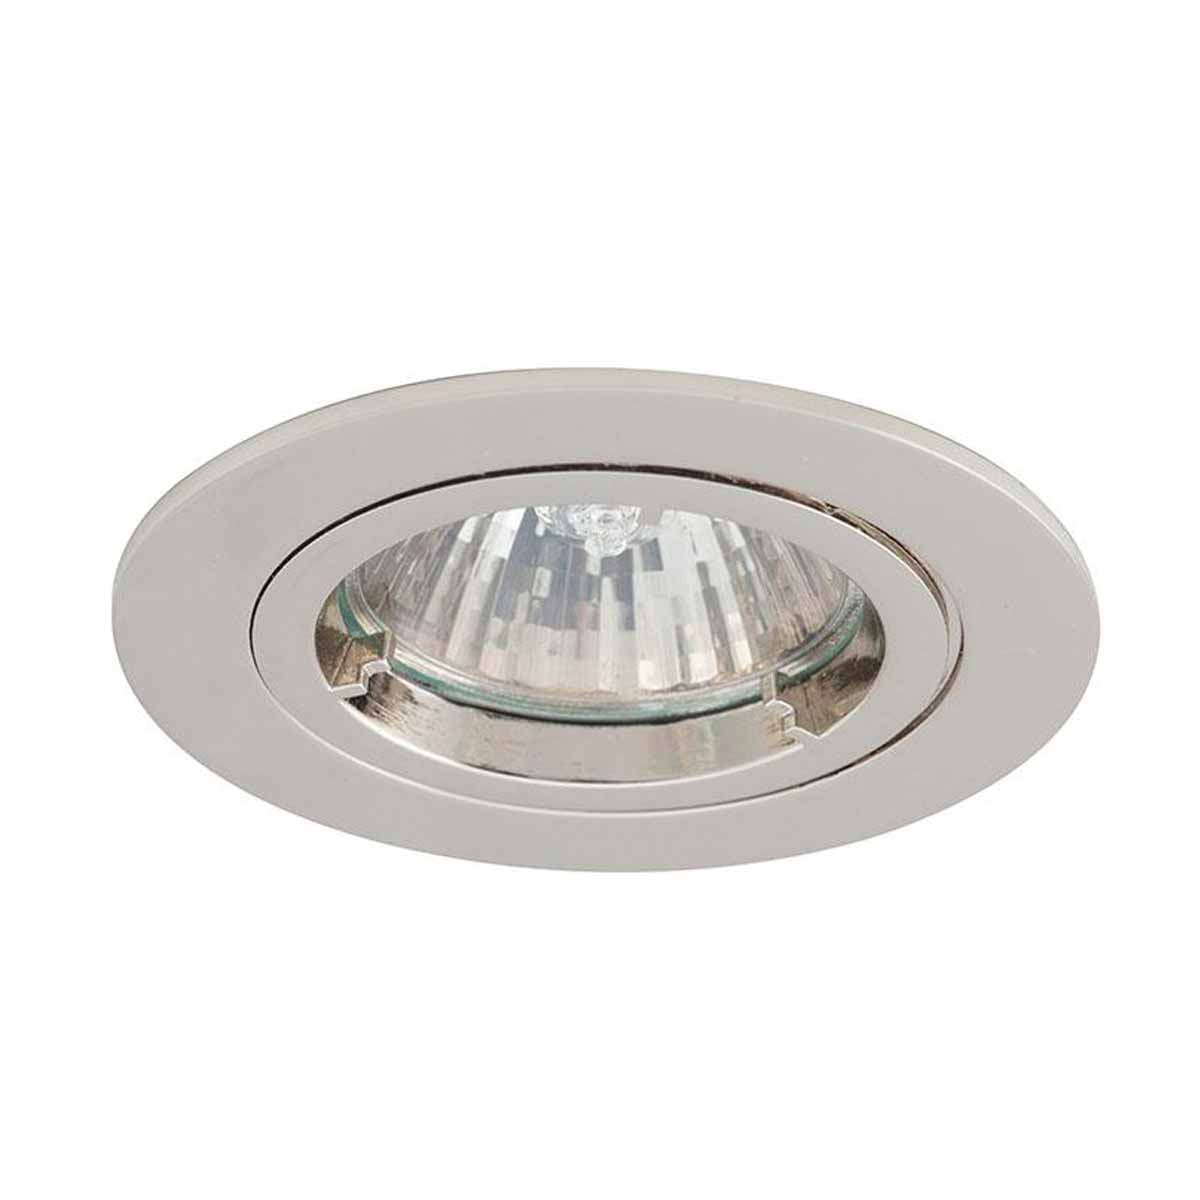 Twistlock 50W Chrome Downlight